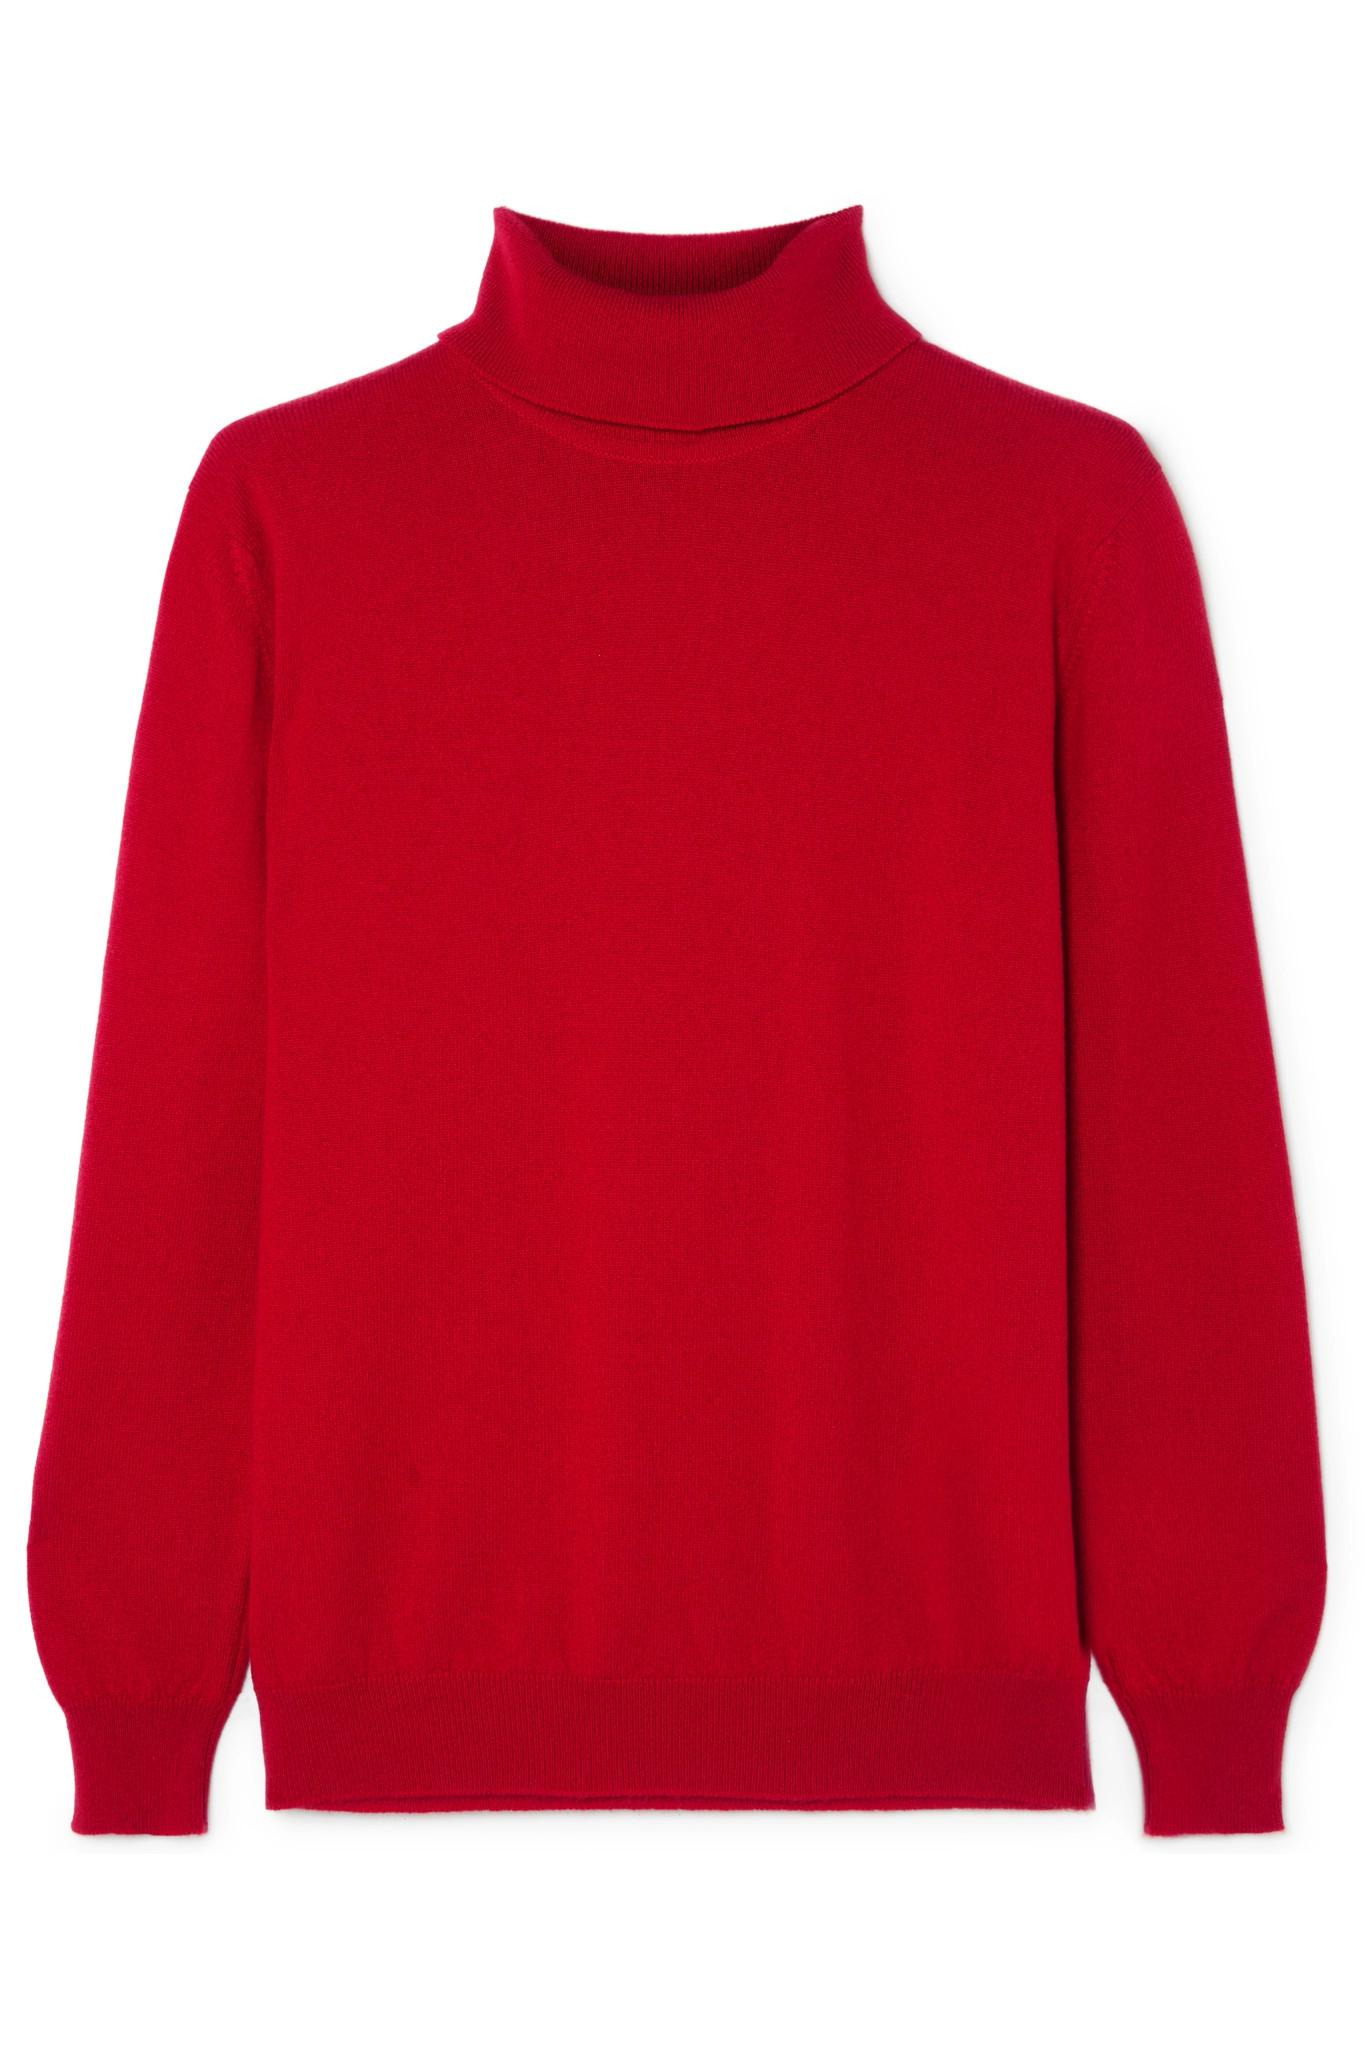 001cf65a3 Lyst -  Daughter Casla Cashmere Turtleneck Sweater in Red